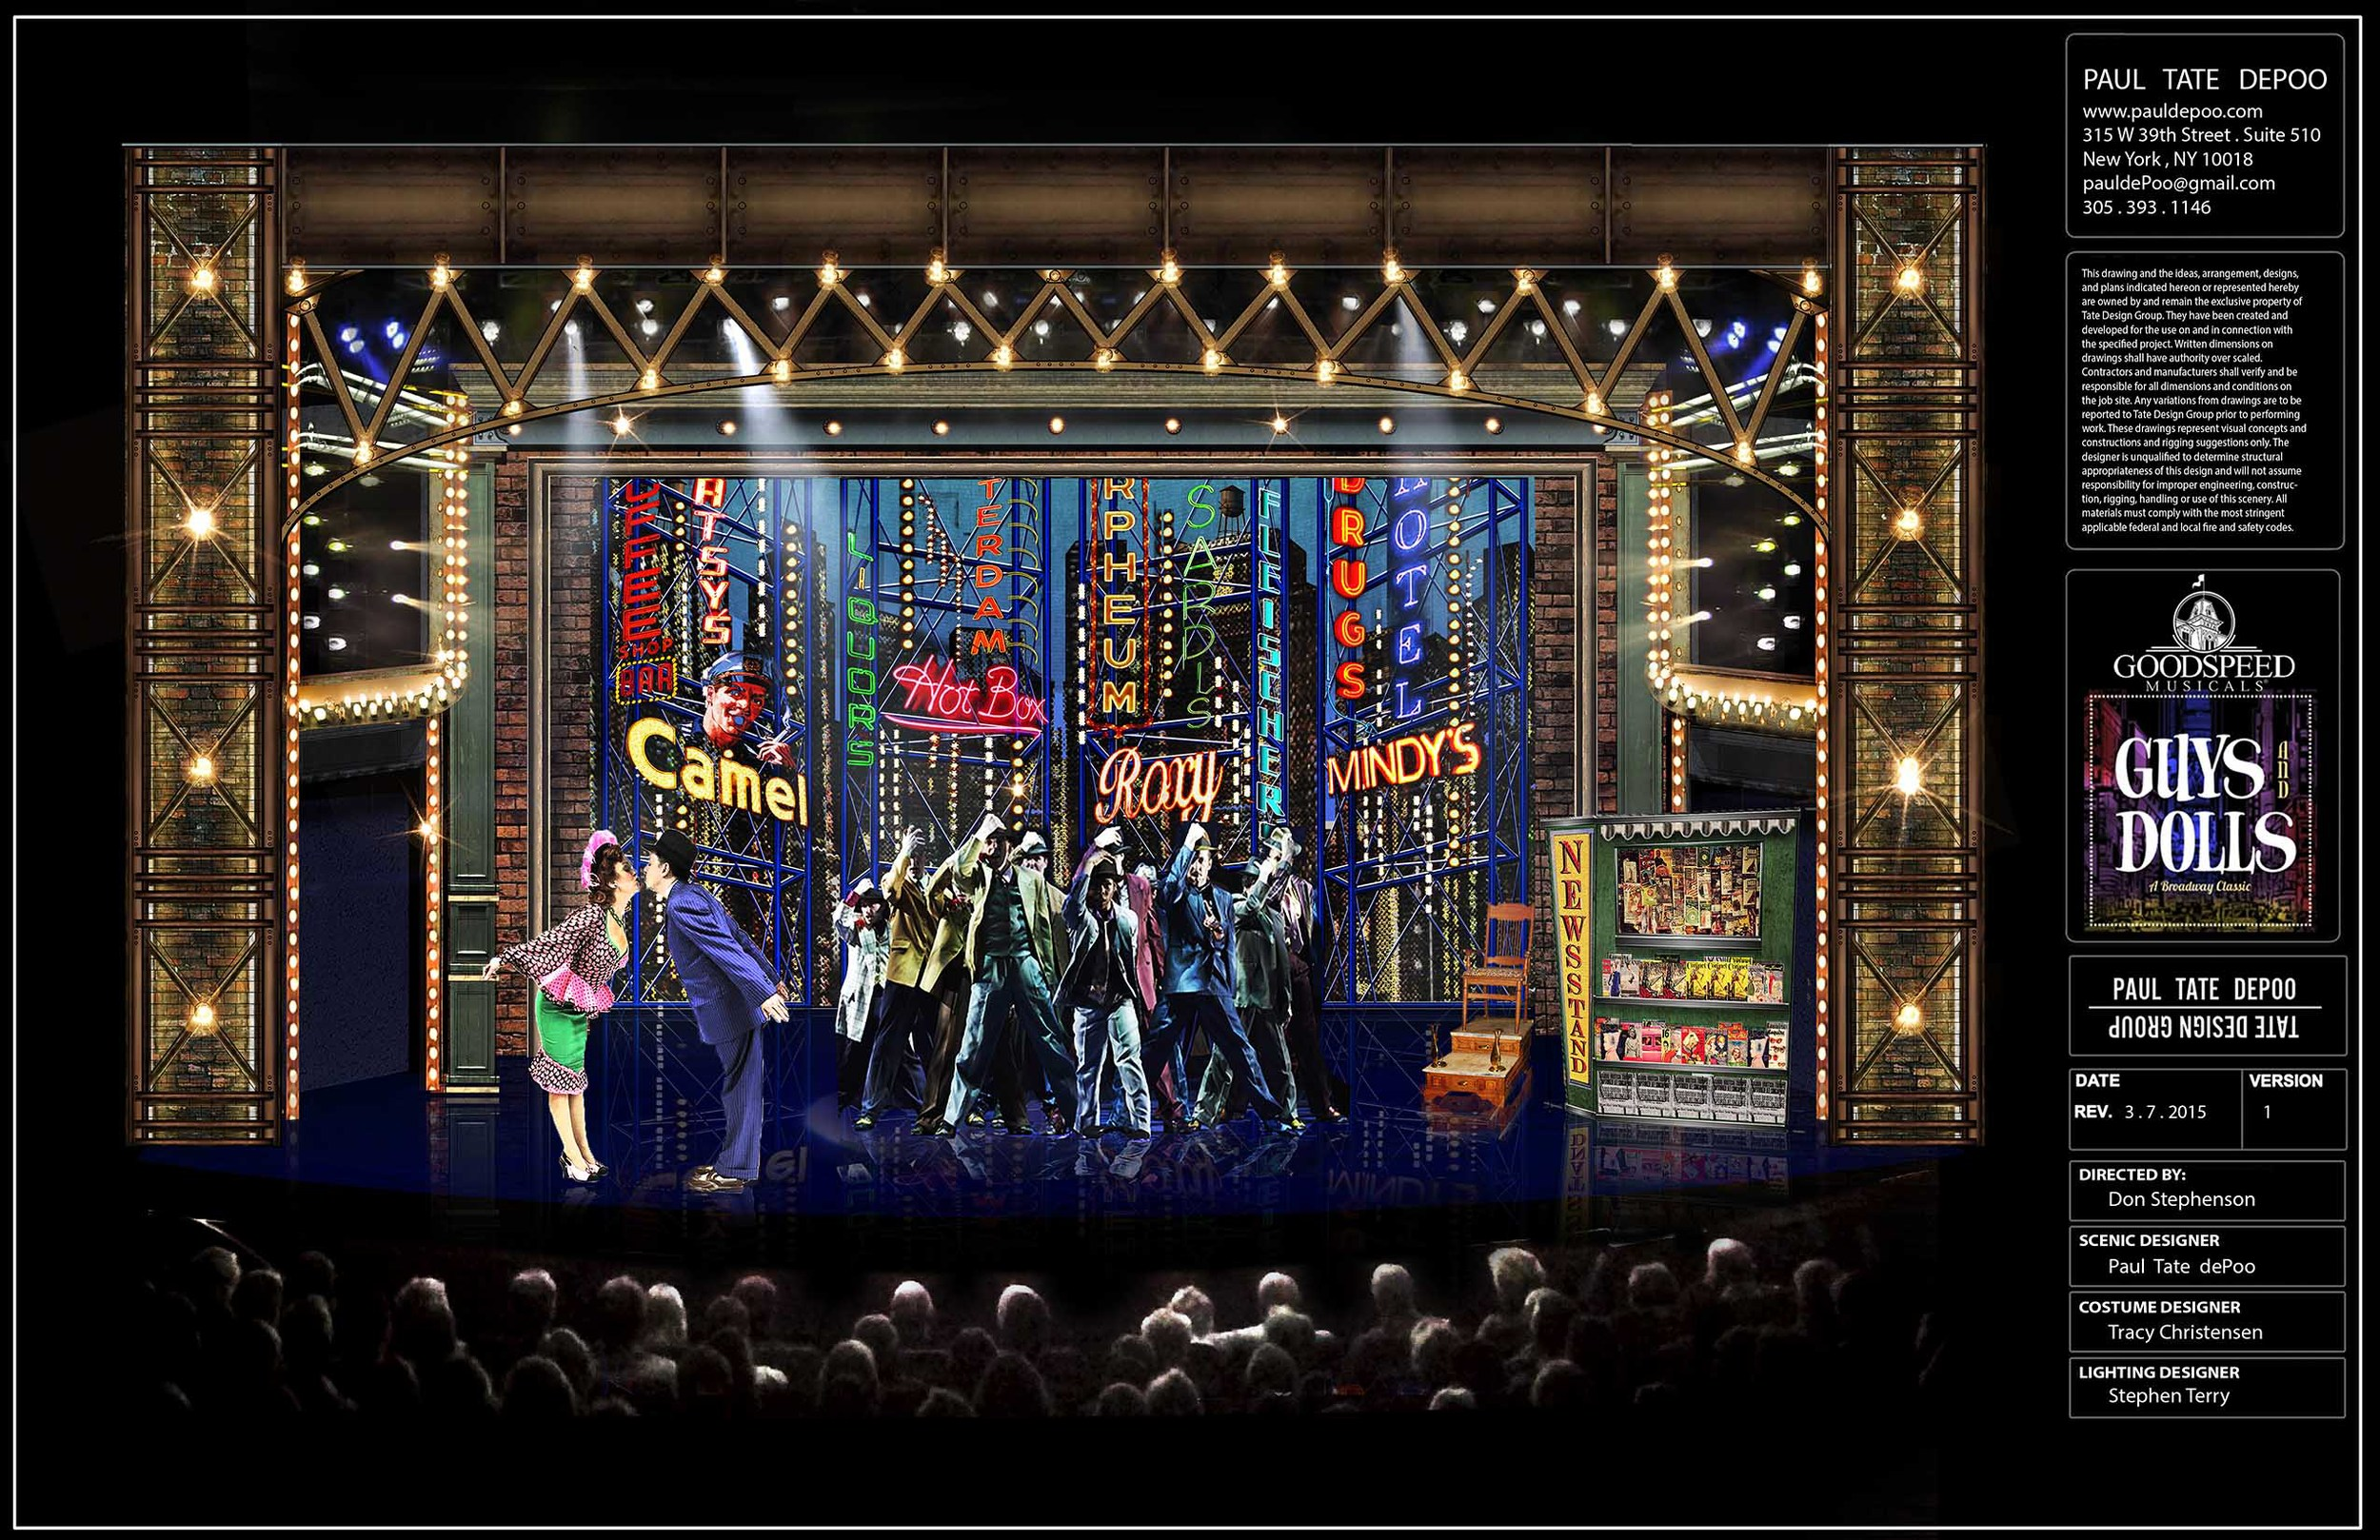 GUYS AND DOLLS SxS copy.jpg